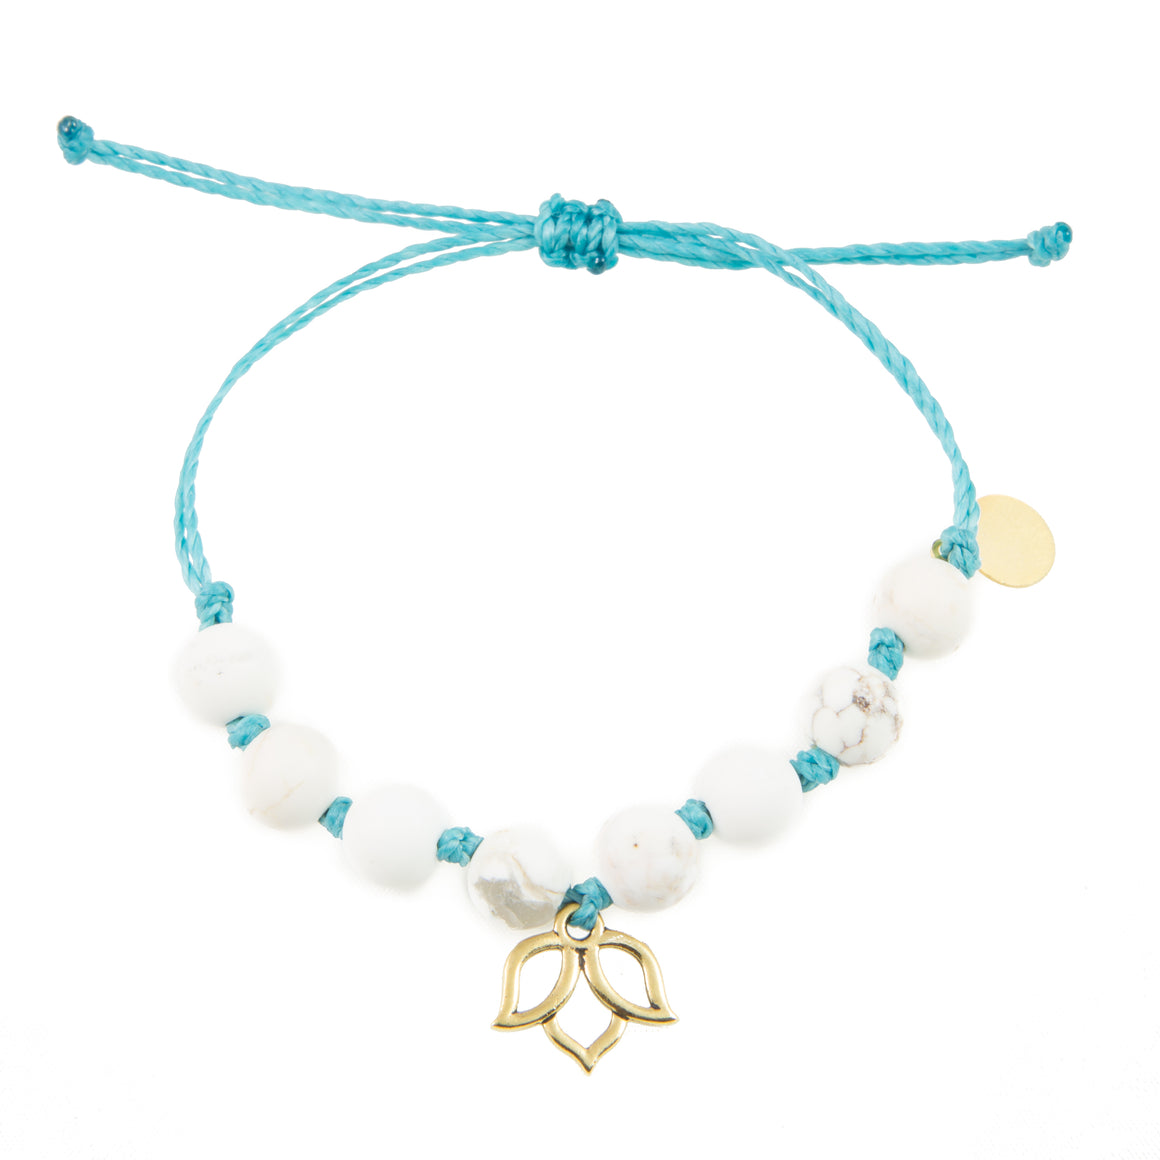 Teal & White Turquoise Lotus Flower Bracelet